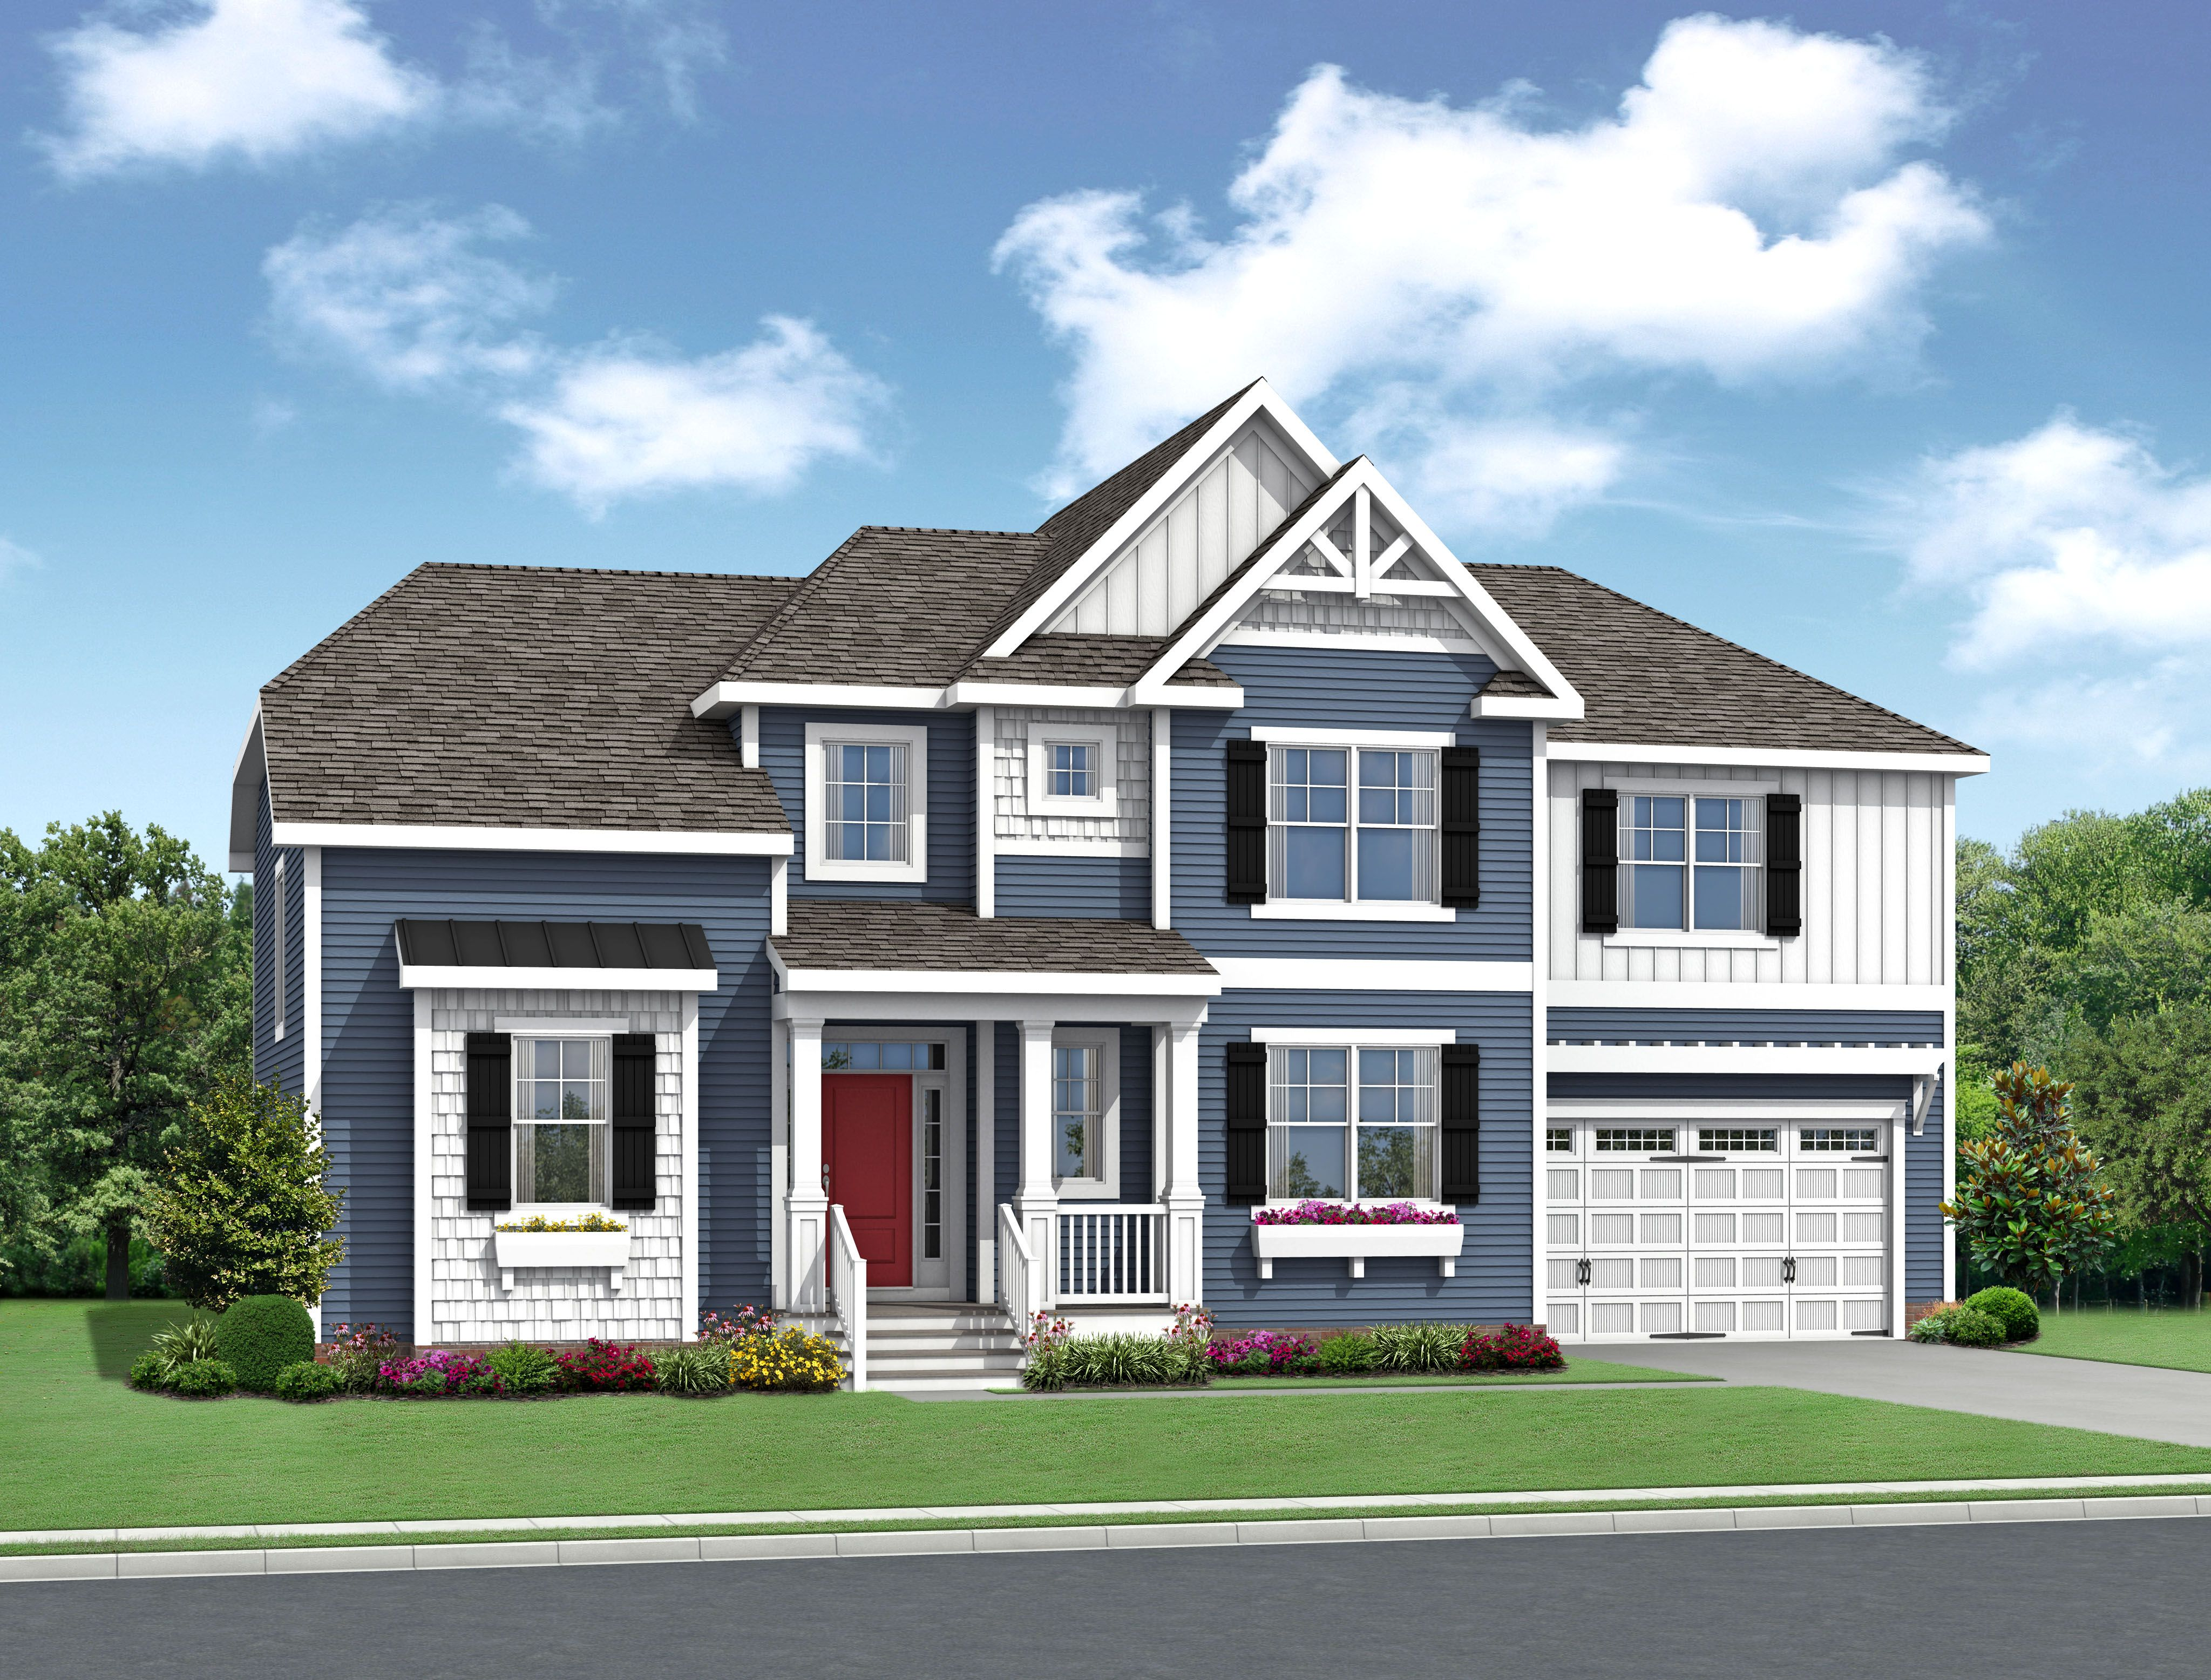 Single Family for Active at Showfield - The Bridgeport 18264 Show Jumper Lane Lewes, Delaware 19958 United States